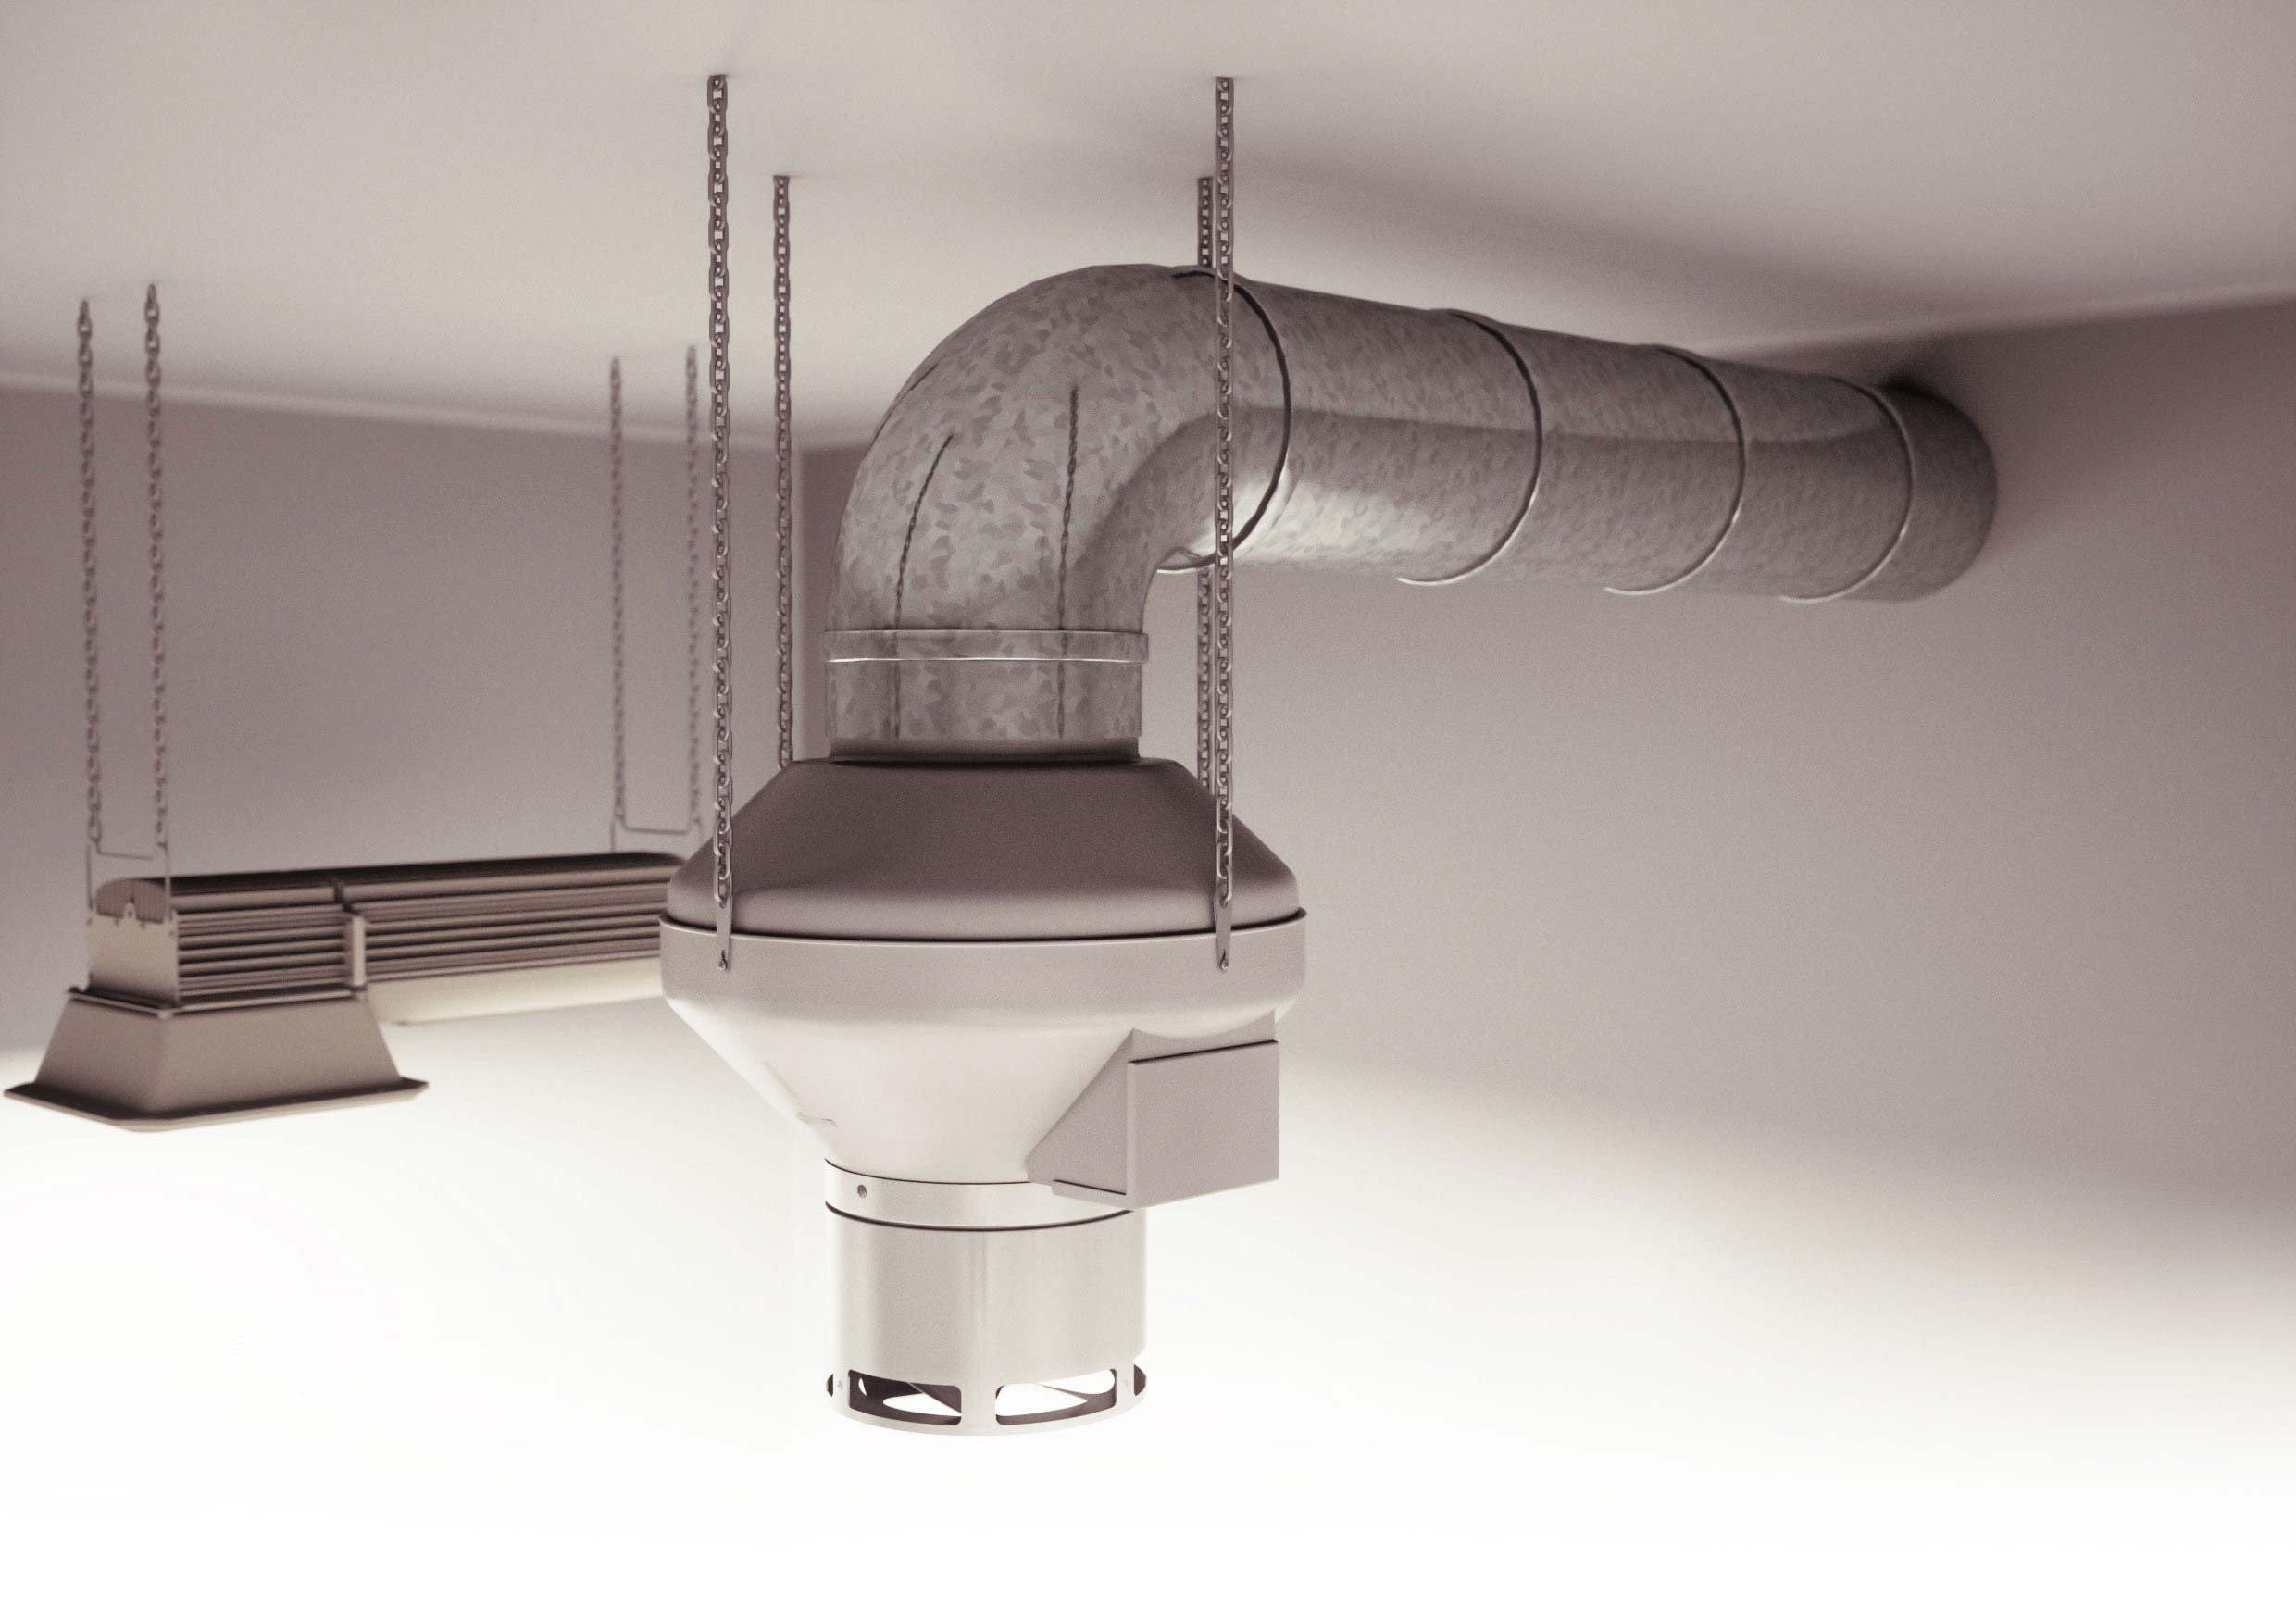 DiffuseAir - Air distribution, enviromental control, ducting example